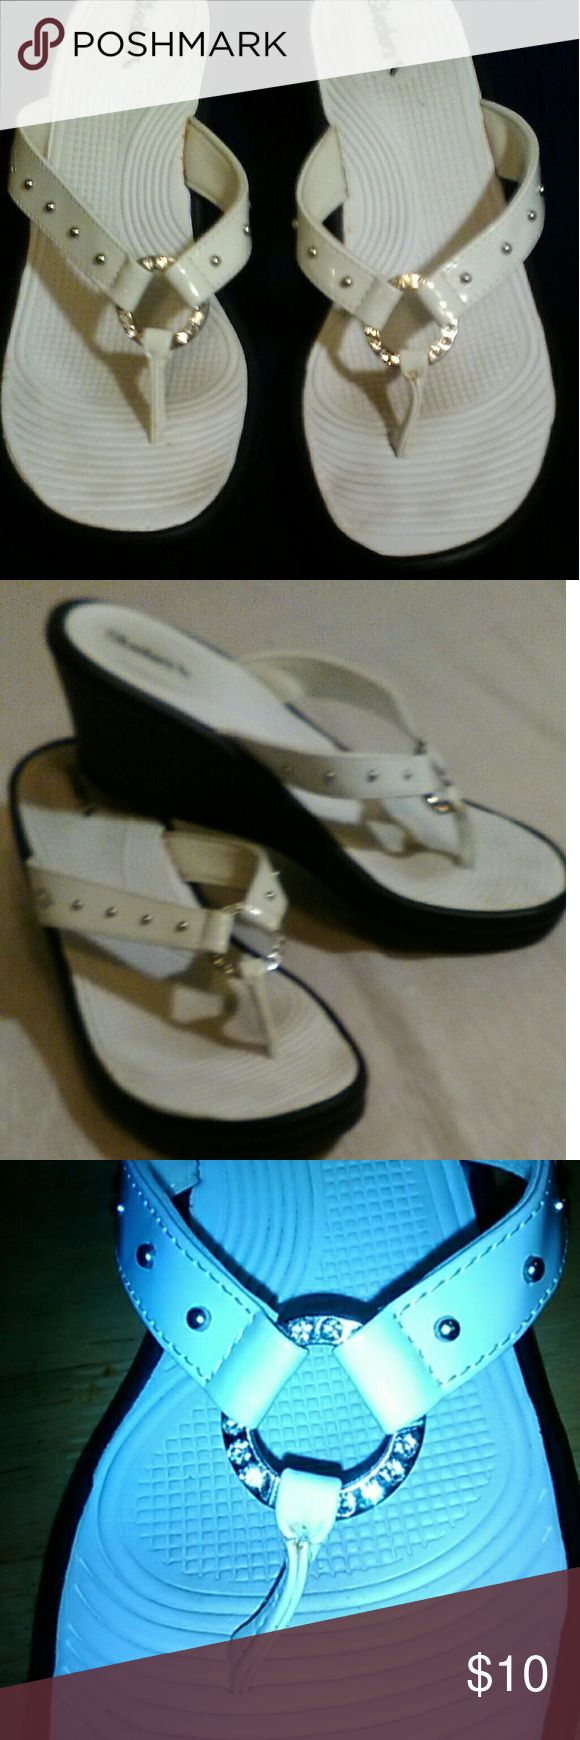 White Skechers Sandals w/ Low Wedge Heel These are nice for the summer! Skechers Shoes Wedges